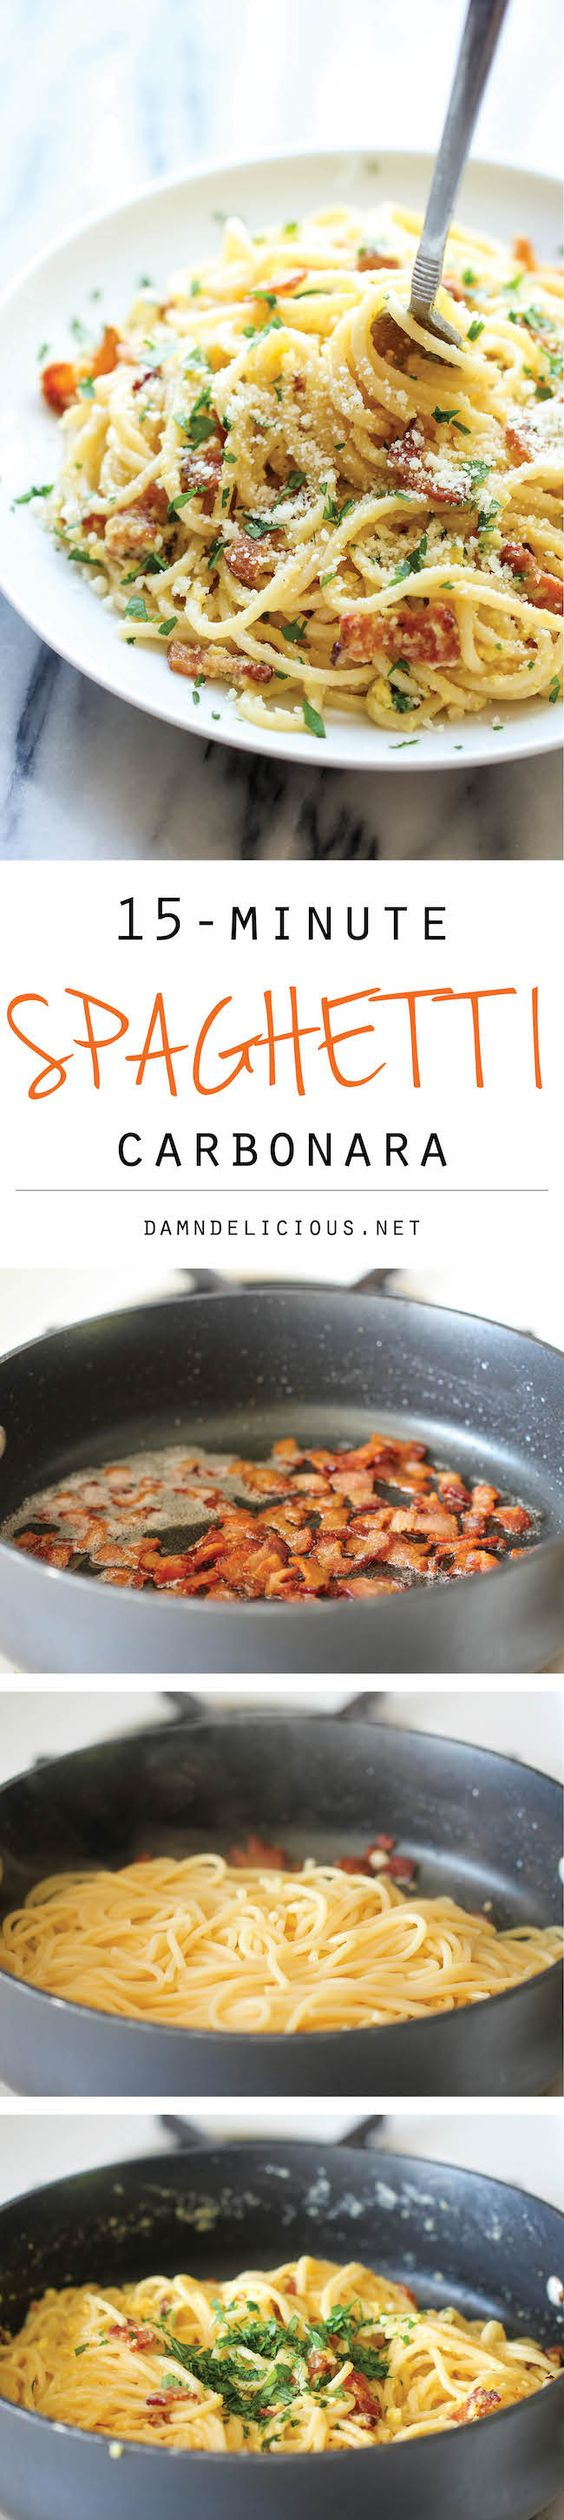 Spaghetti Carbonara - The easiest pasta dish you will ever make with just 5 ingredients in 15 minutes, loaded with Parmesan and bacon! Click the picture for the recipe instructions.